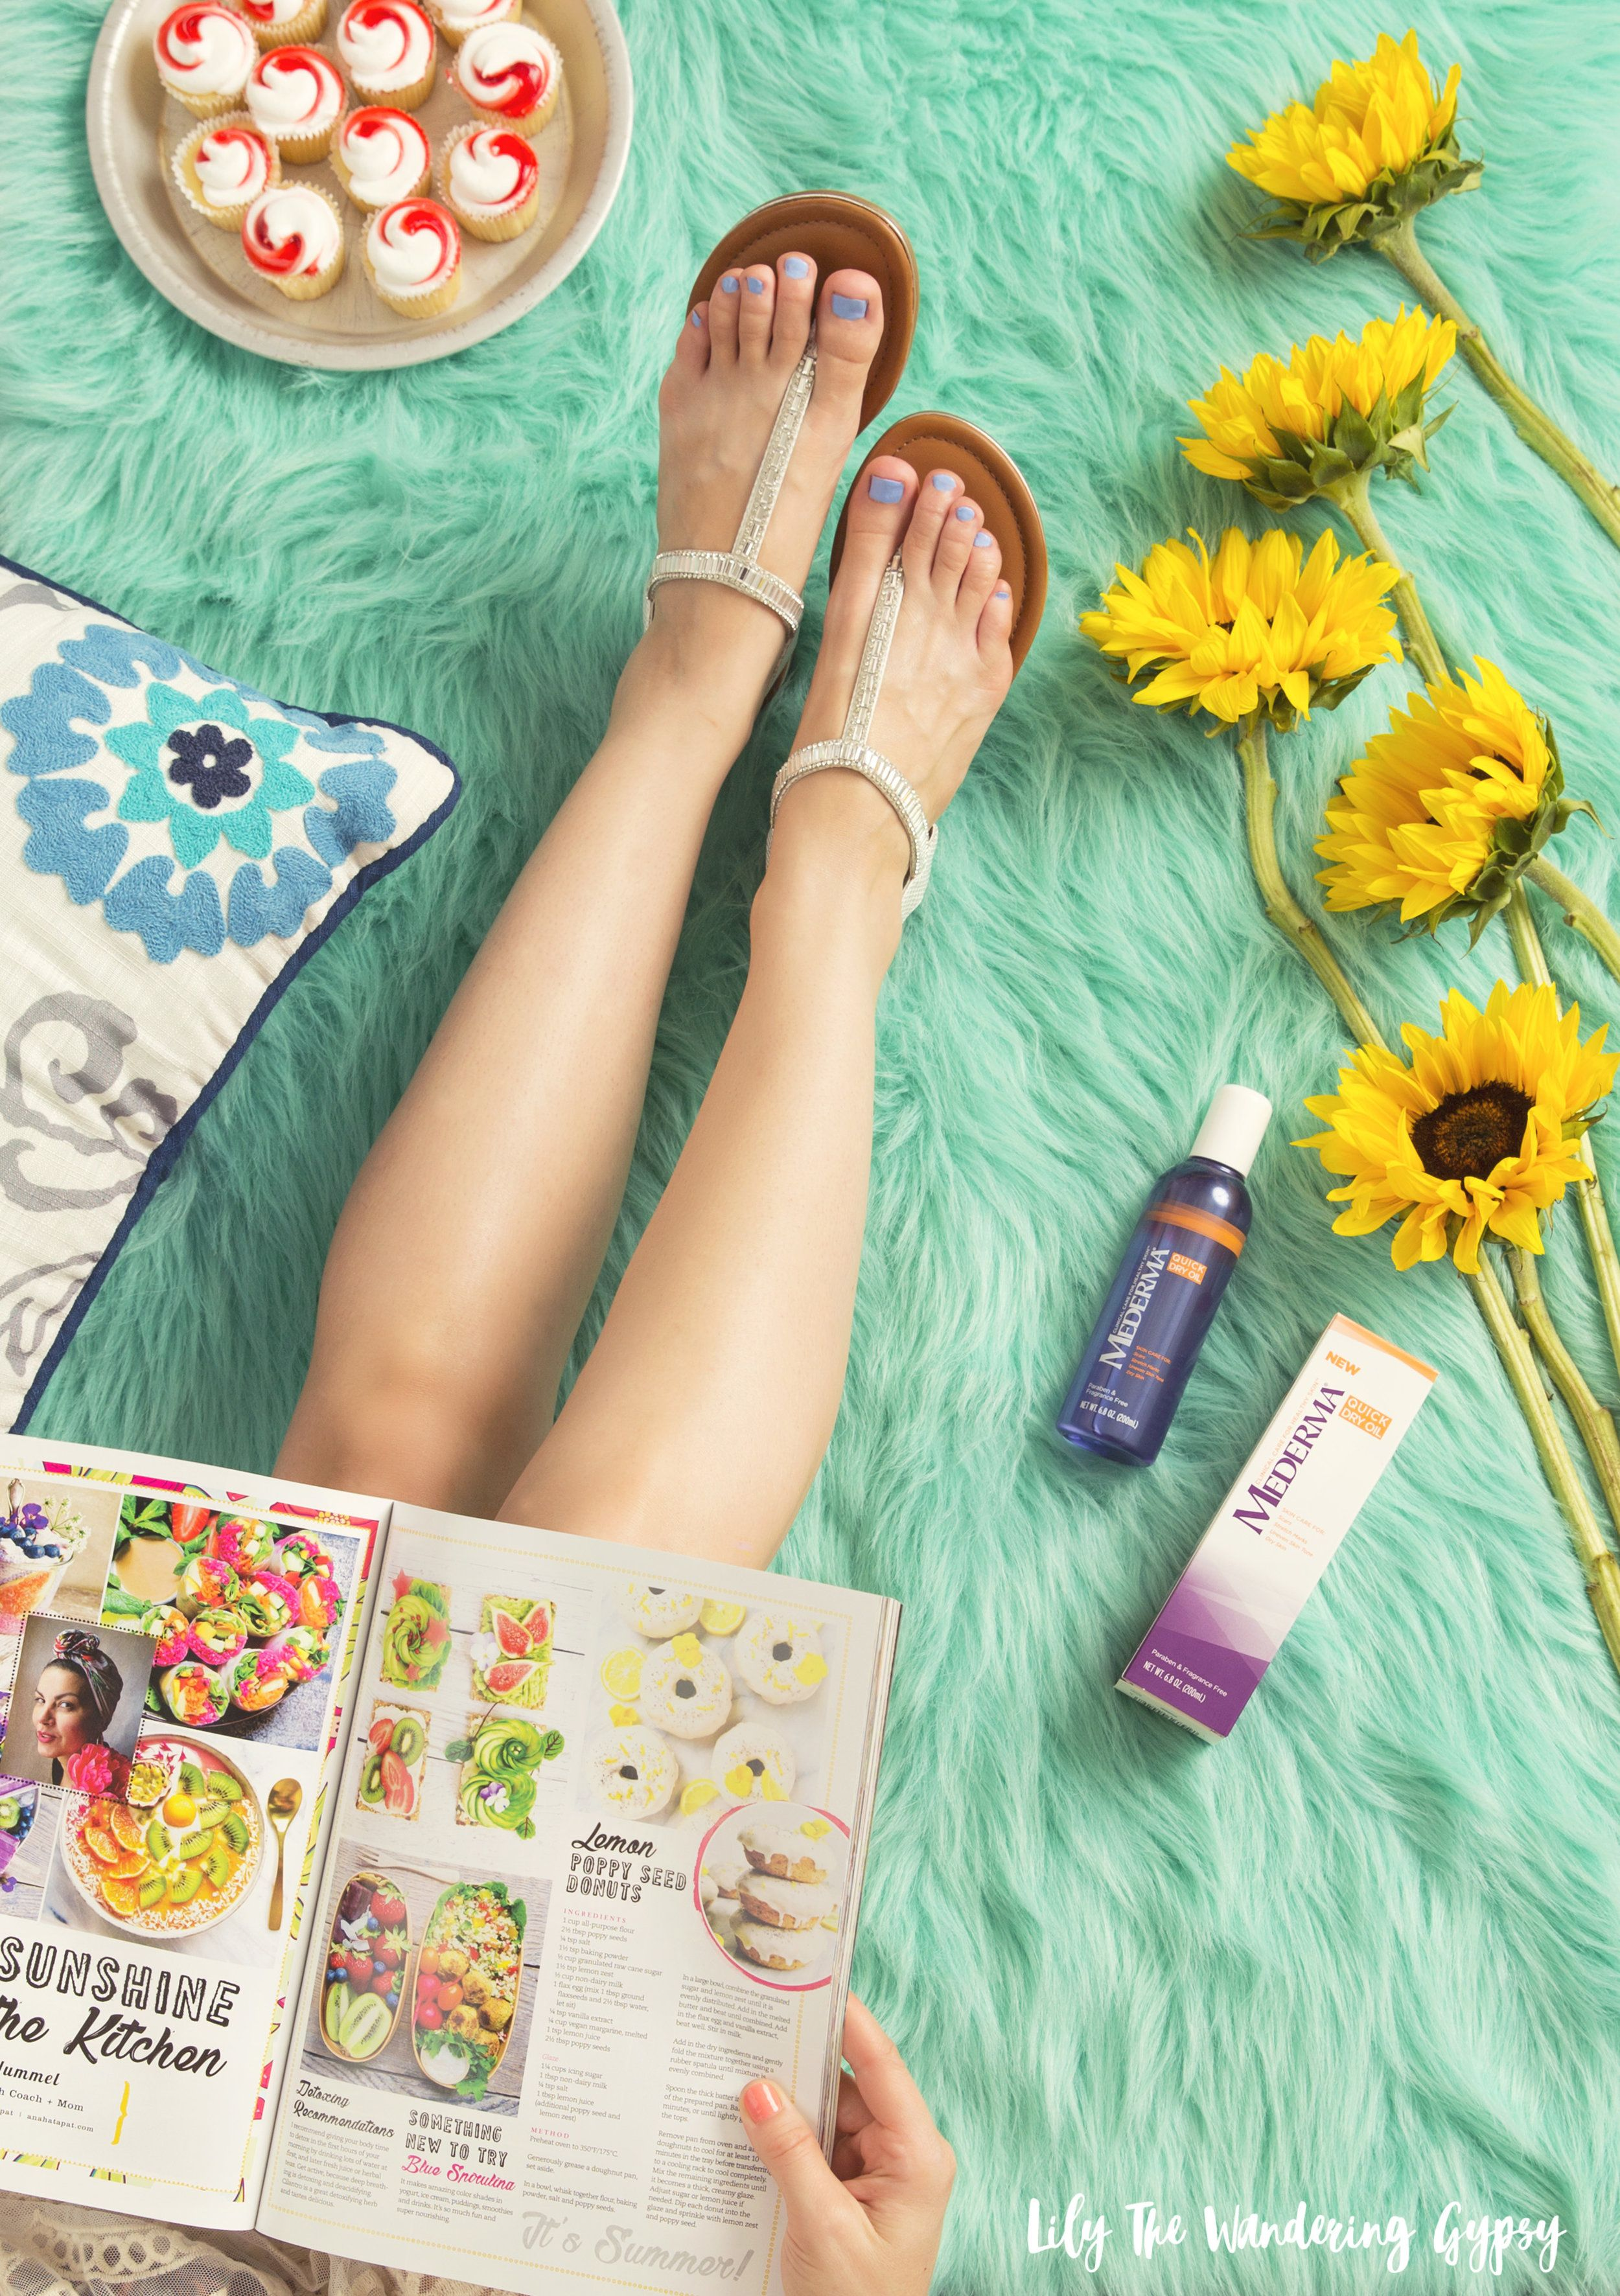 How To Keep Your Skin In Top Condition With Mederma Beauty Tips